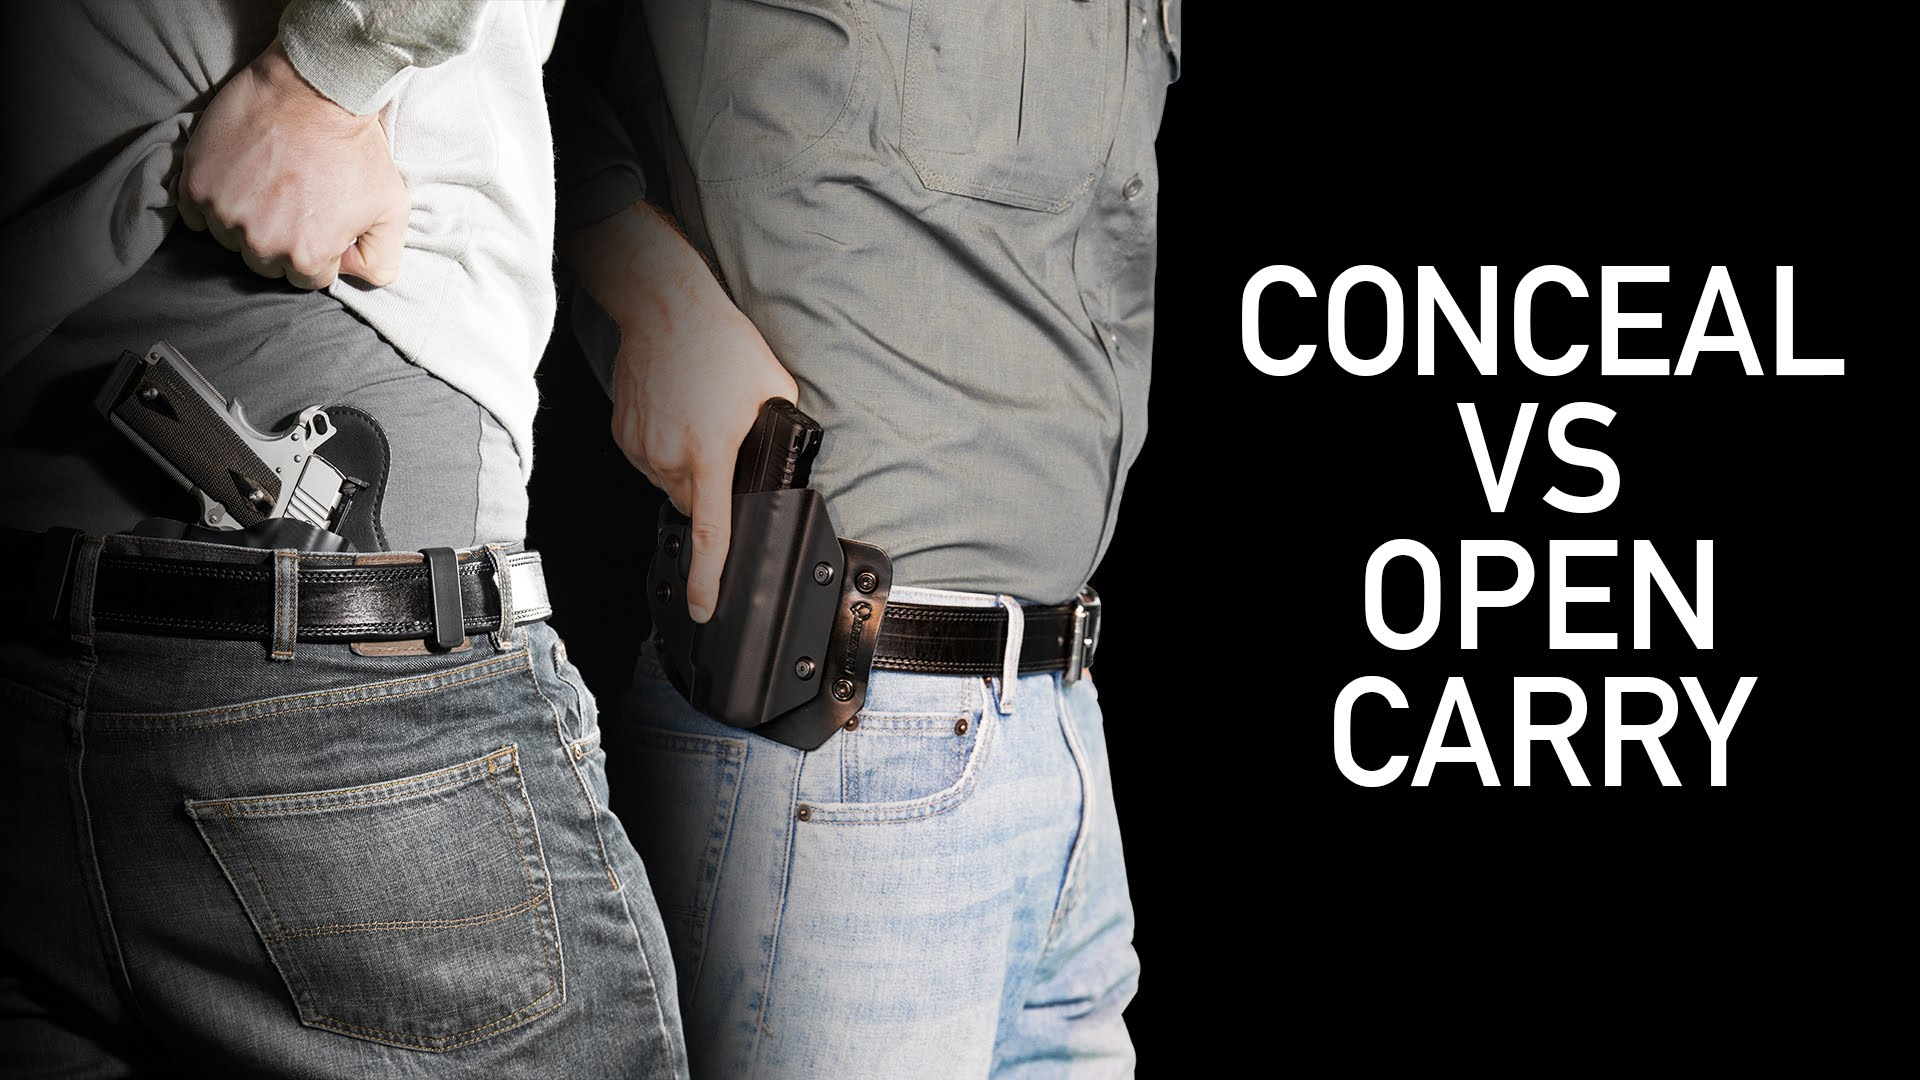 Concealed Carrying vs Open Carrying